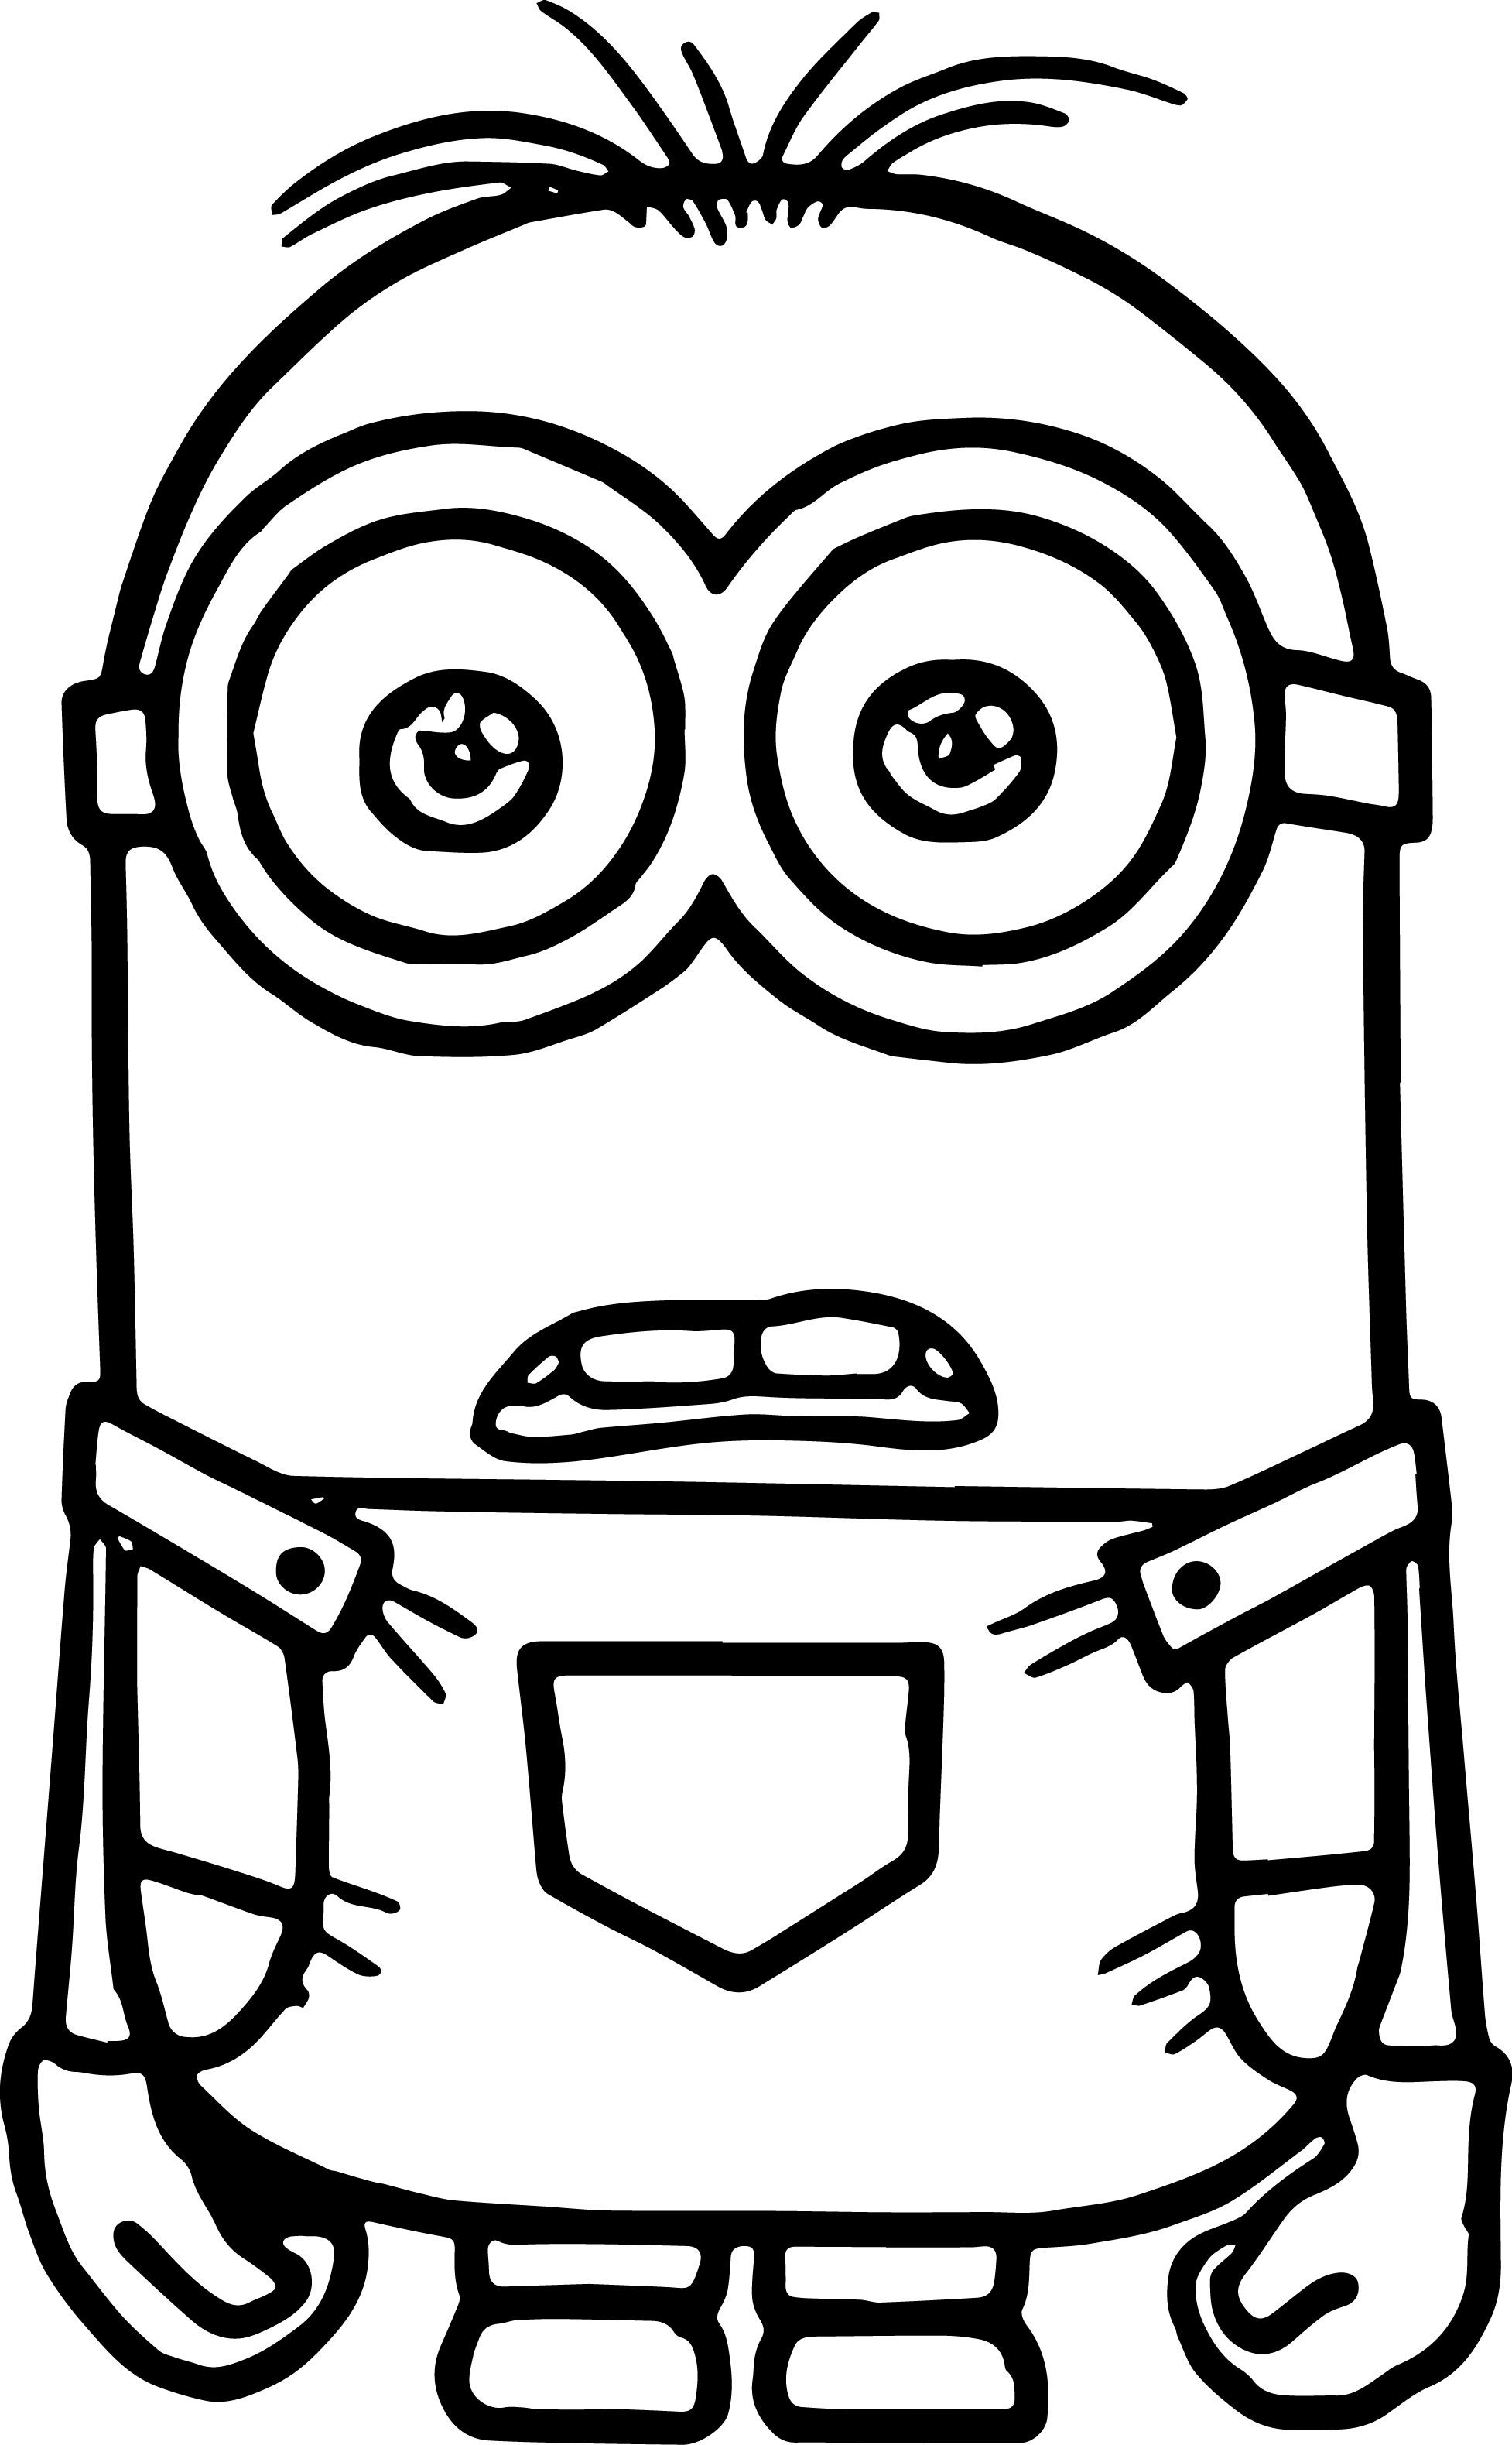 Minions Coloring Pages | Pinterest | Minion halloween, Wallpaper and ...